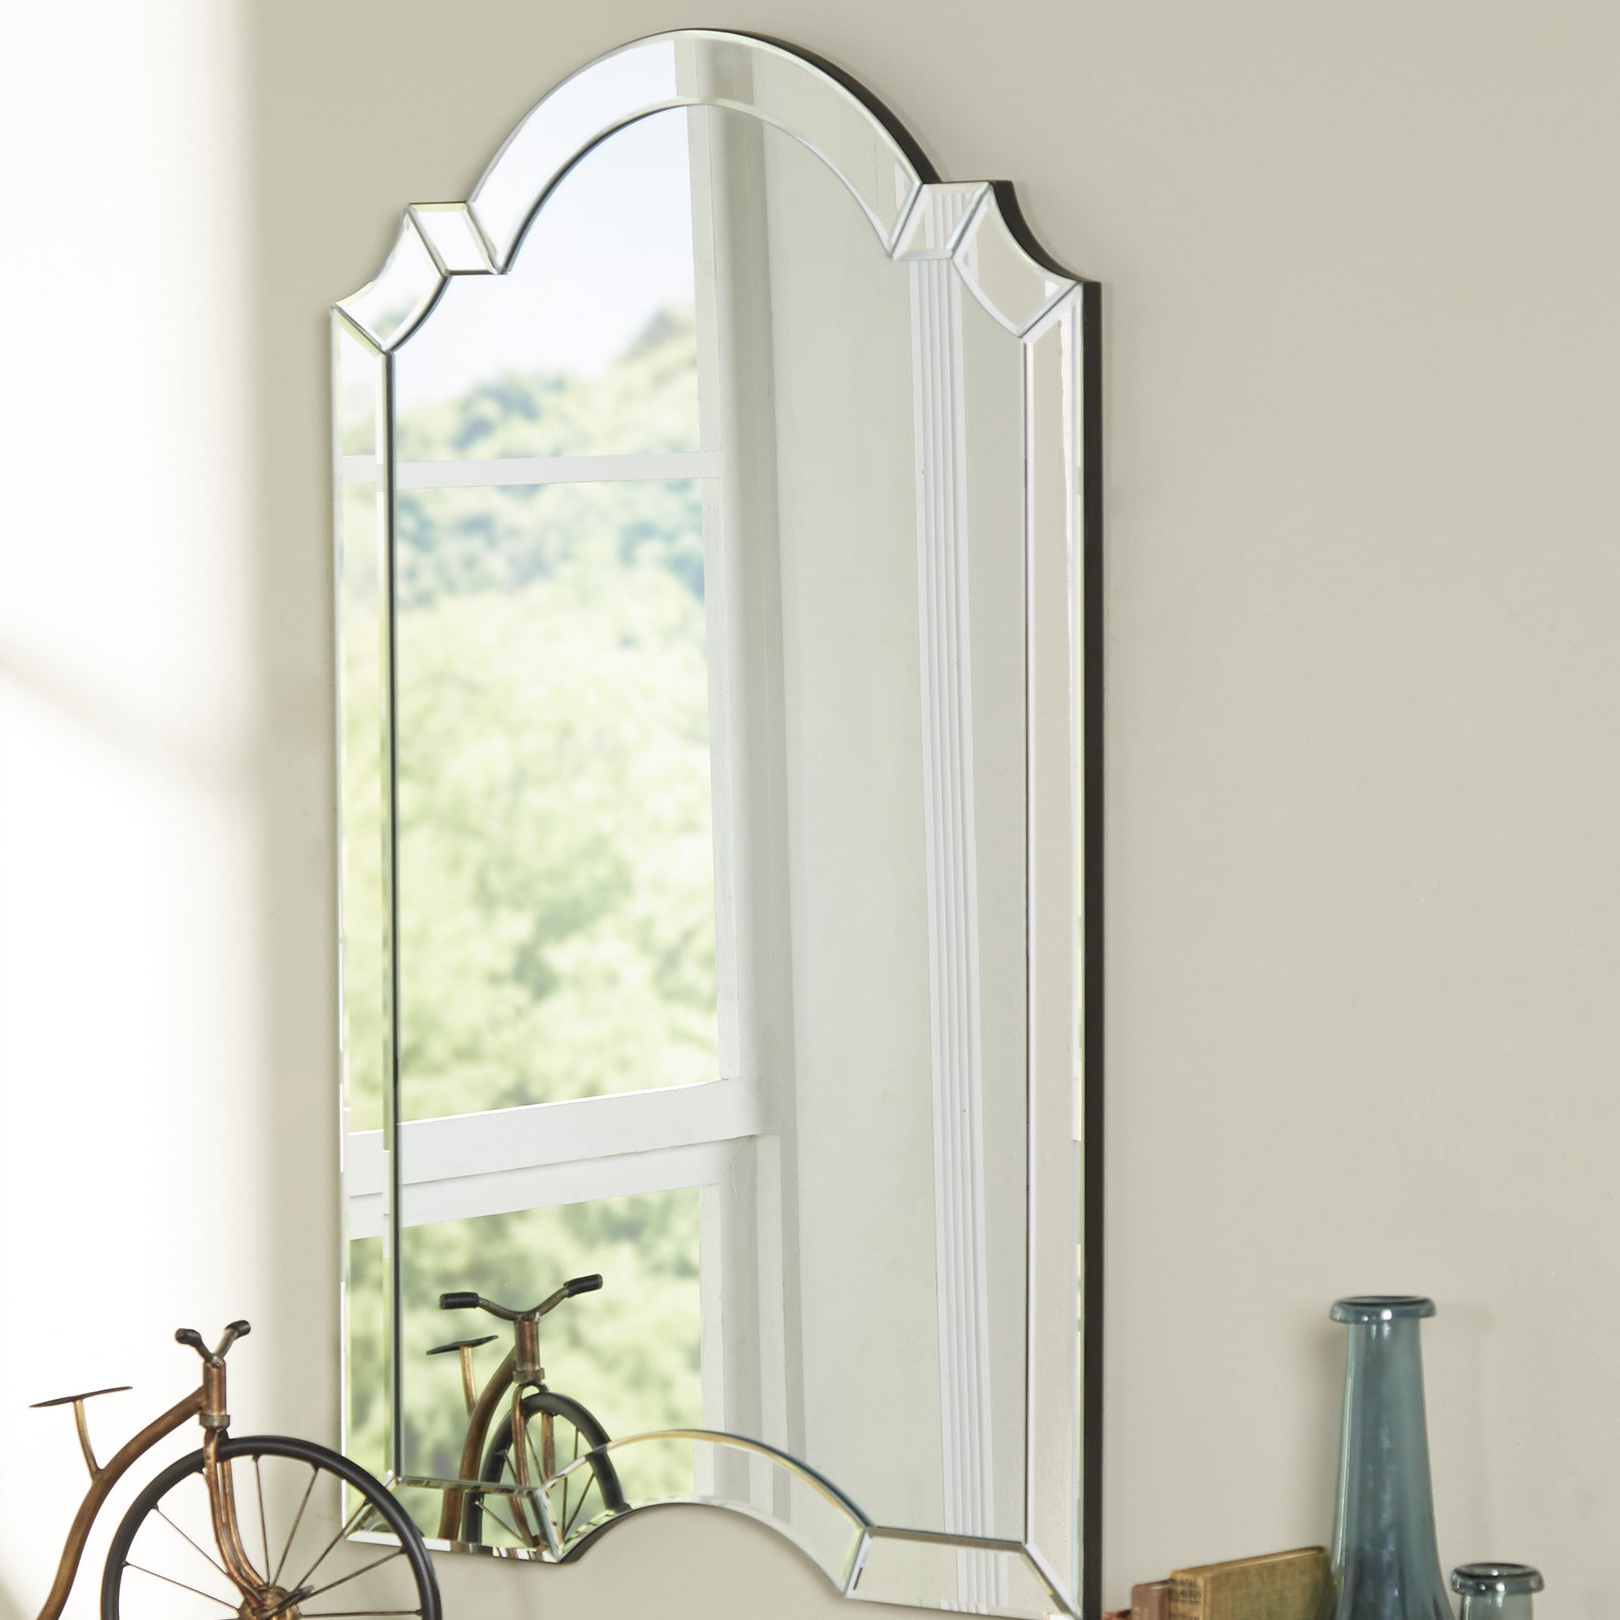 Northend Wall Mirrors Pertaining To 2020 Willa Arlo Interiors Ekaterina Arch/crowned Top Wall Mirror (Gallery 12 of 20)